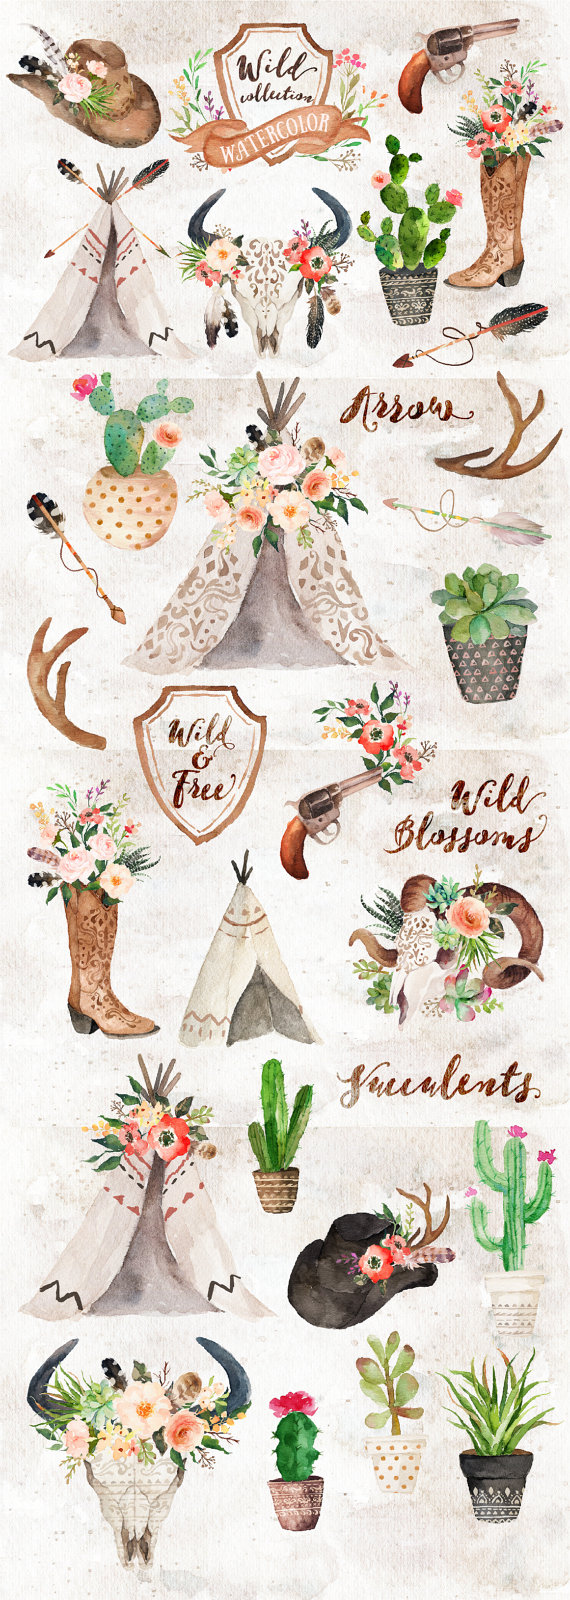 Watercolor Wild West Collection/Wedding/Clip art collection.